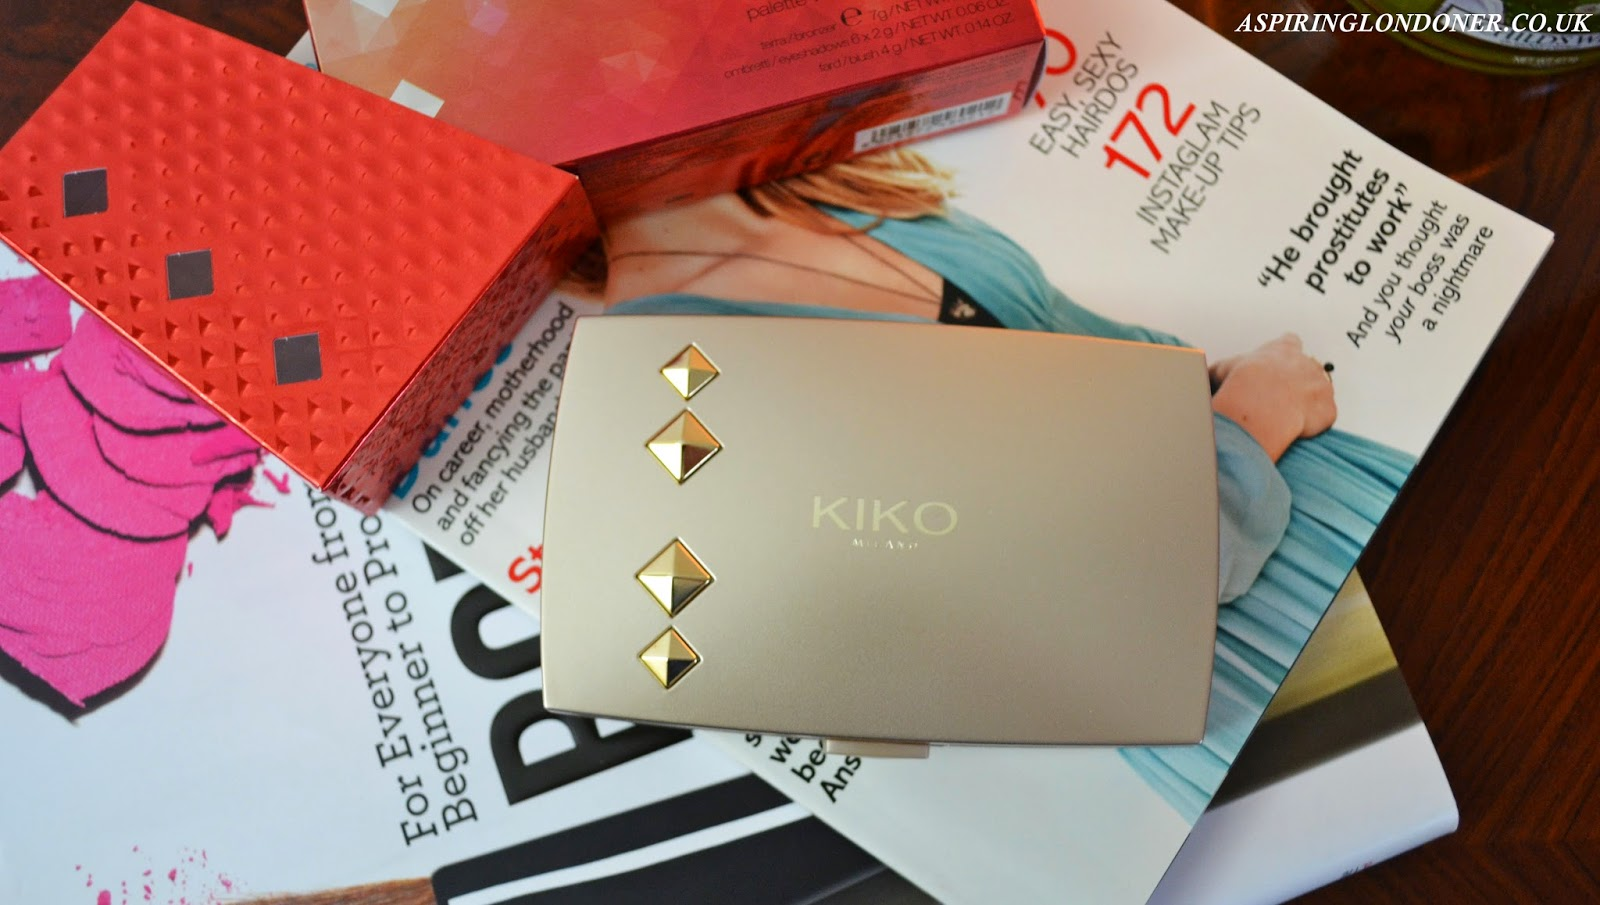 Kiko Haute Punk Collection Beauty Apotheosis Total Look Palette Review & Swatches - Aspiring Londoner